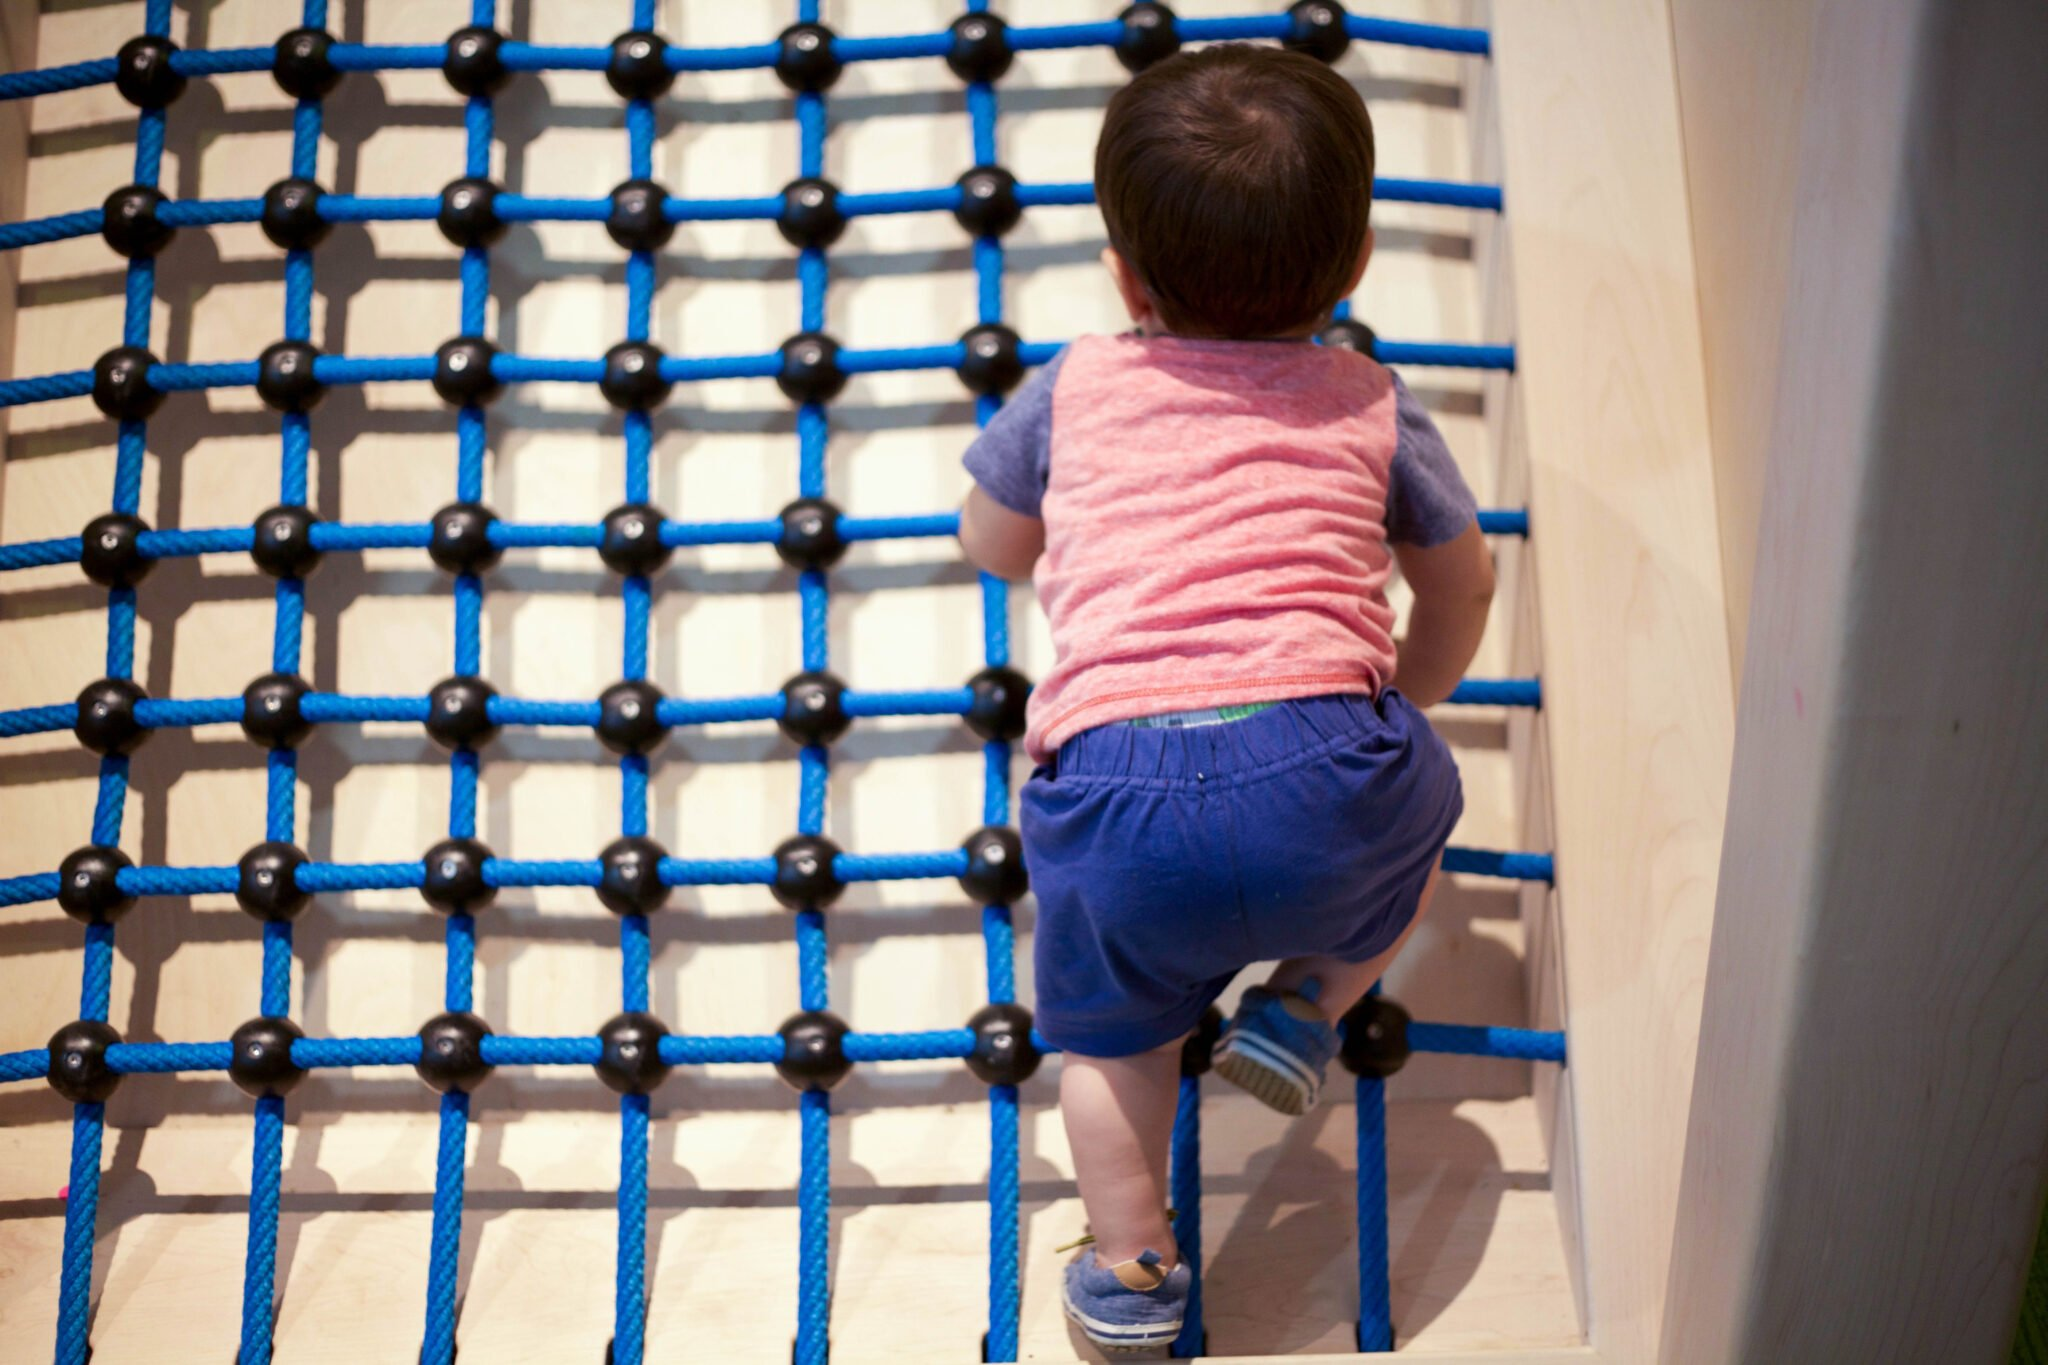 Climbing a rope ladder at a minnesota children's museum toddler section